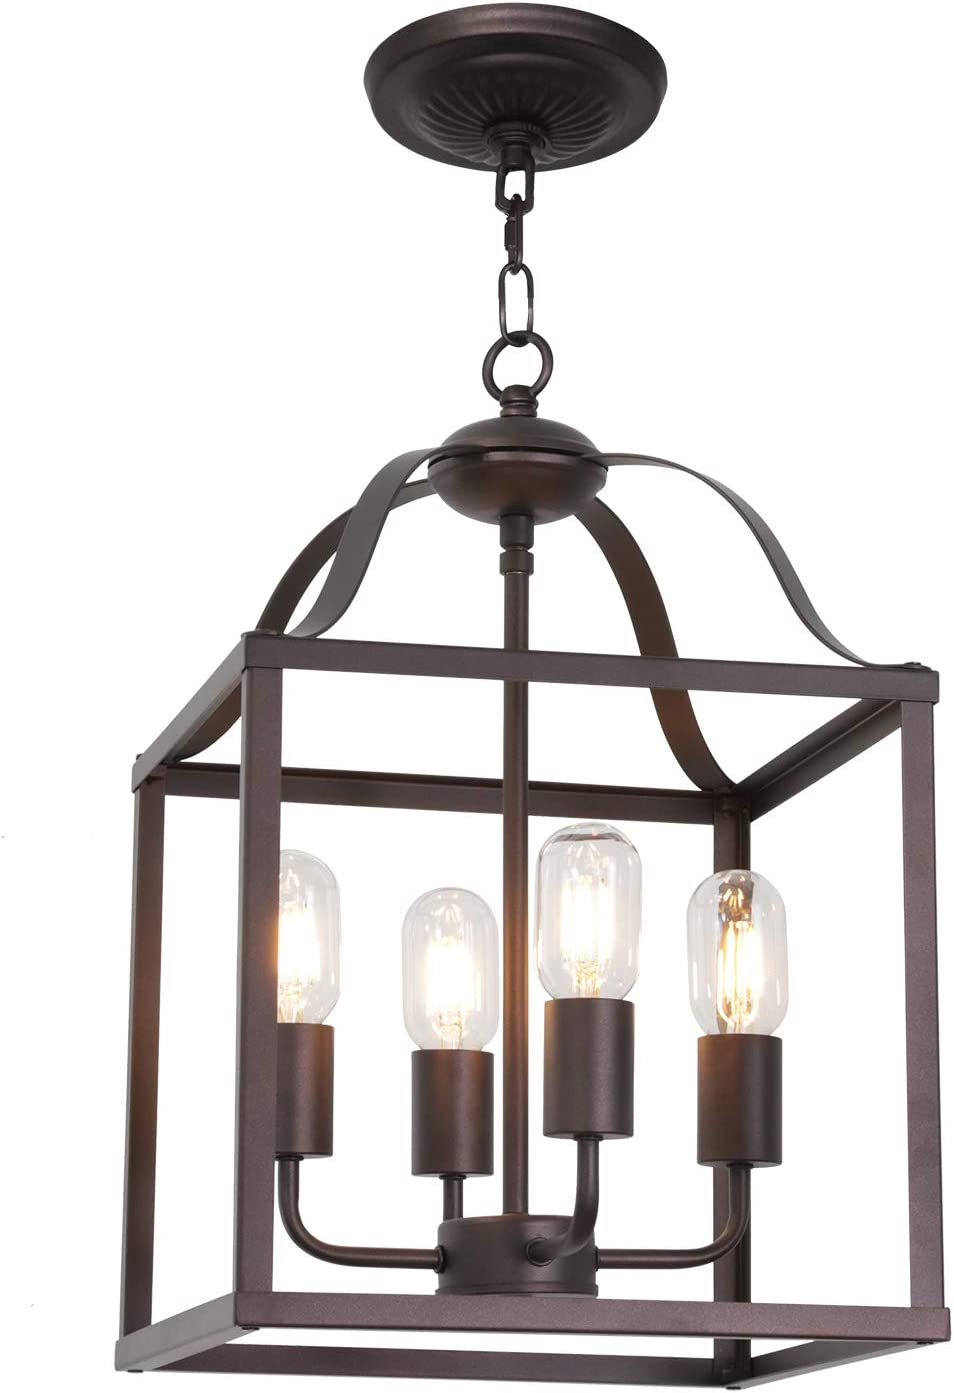 MELUCEE 4-Light Farmhouse Chandelier Foyer Lighting Oil Rubbed Bronze Finish, Bird Cage Lantern Pendant Lights Hallway Light Fixtures Ceiling Entry Chandelier Kitchen Island Lighting